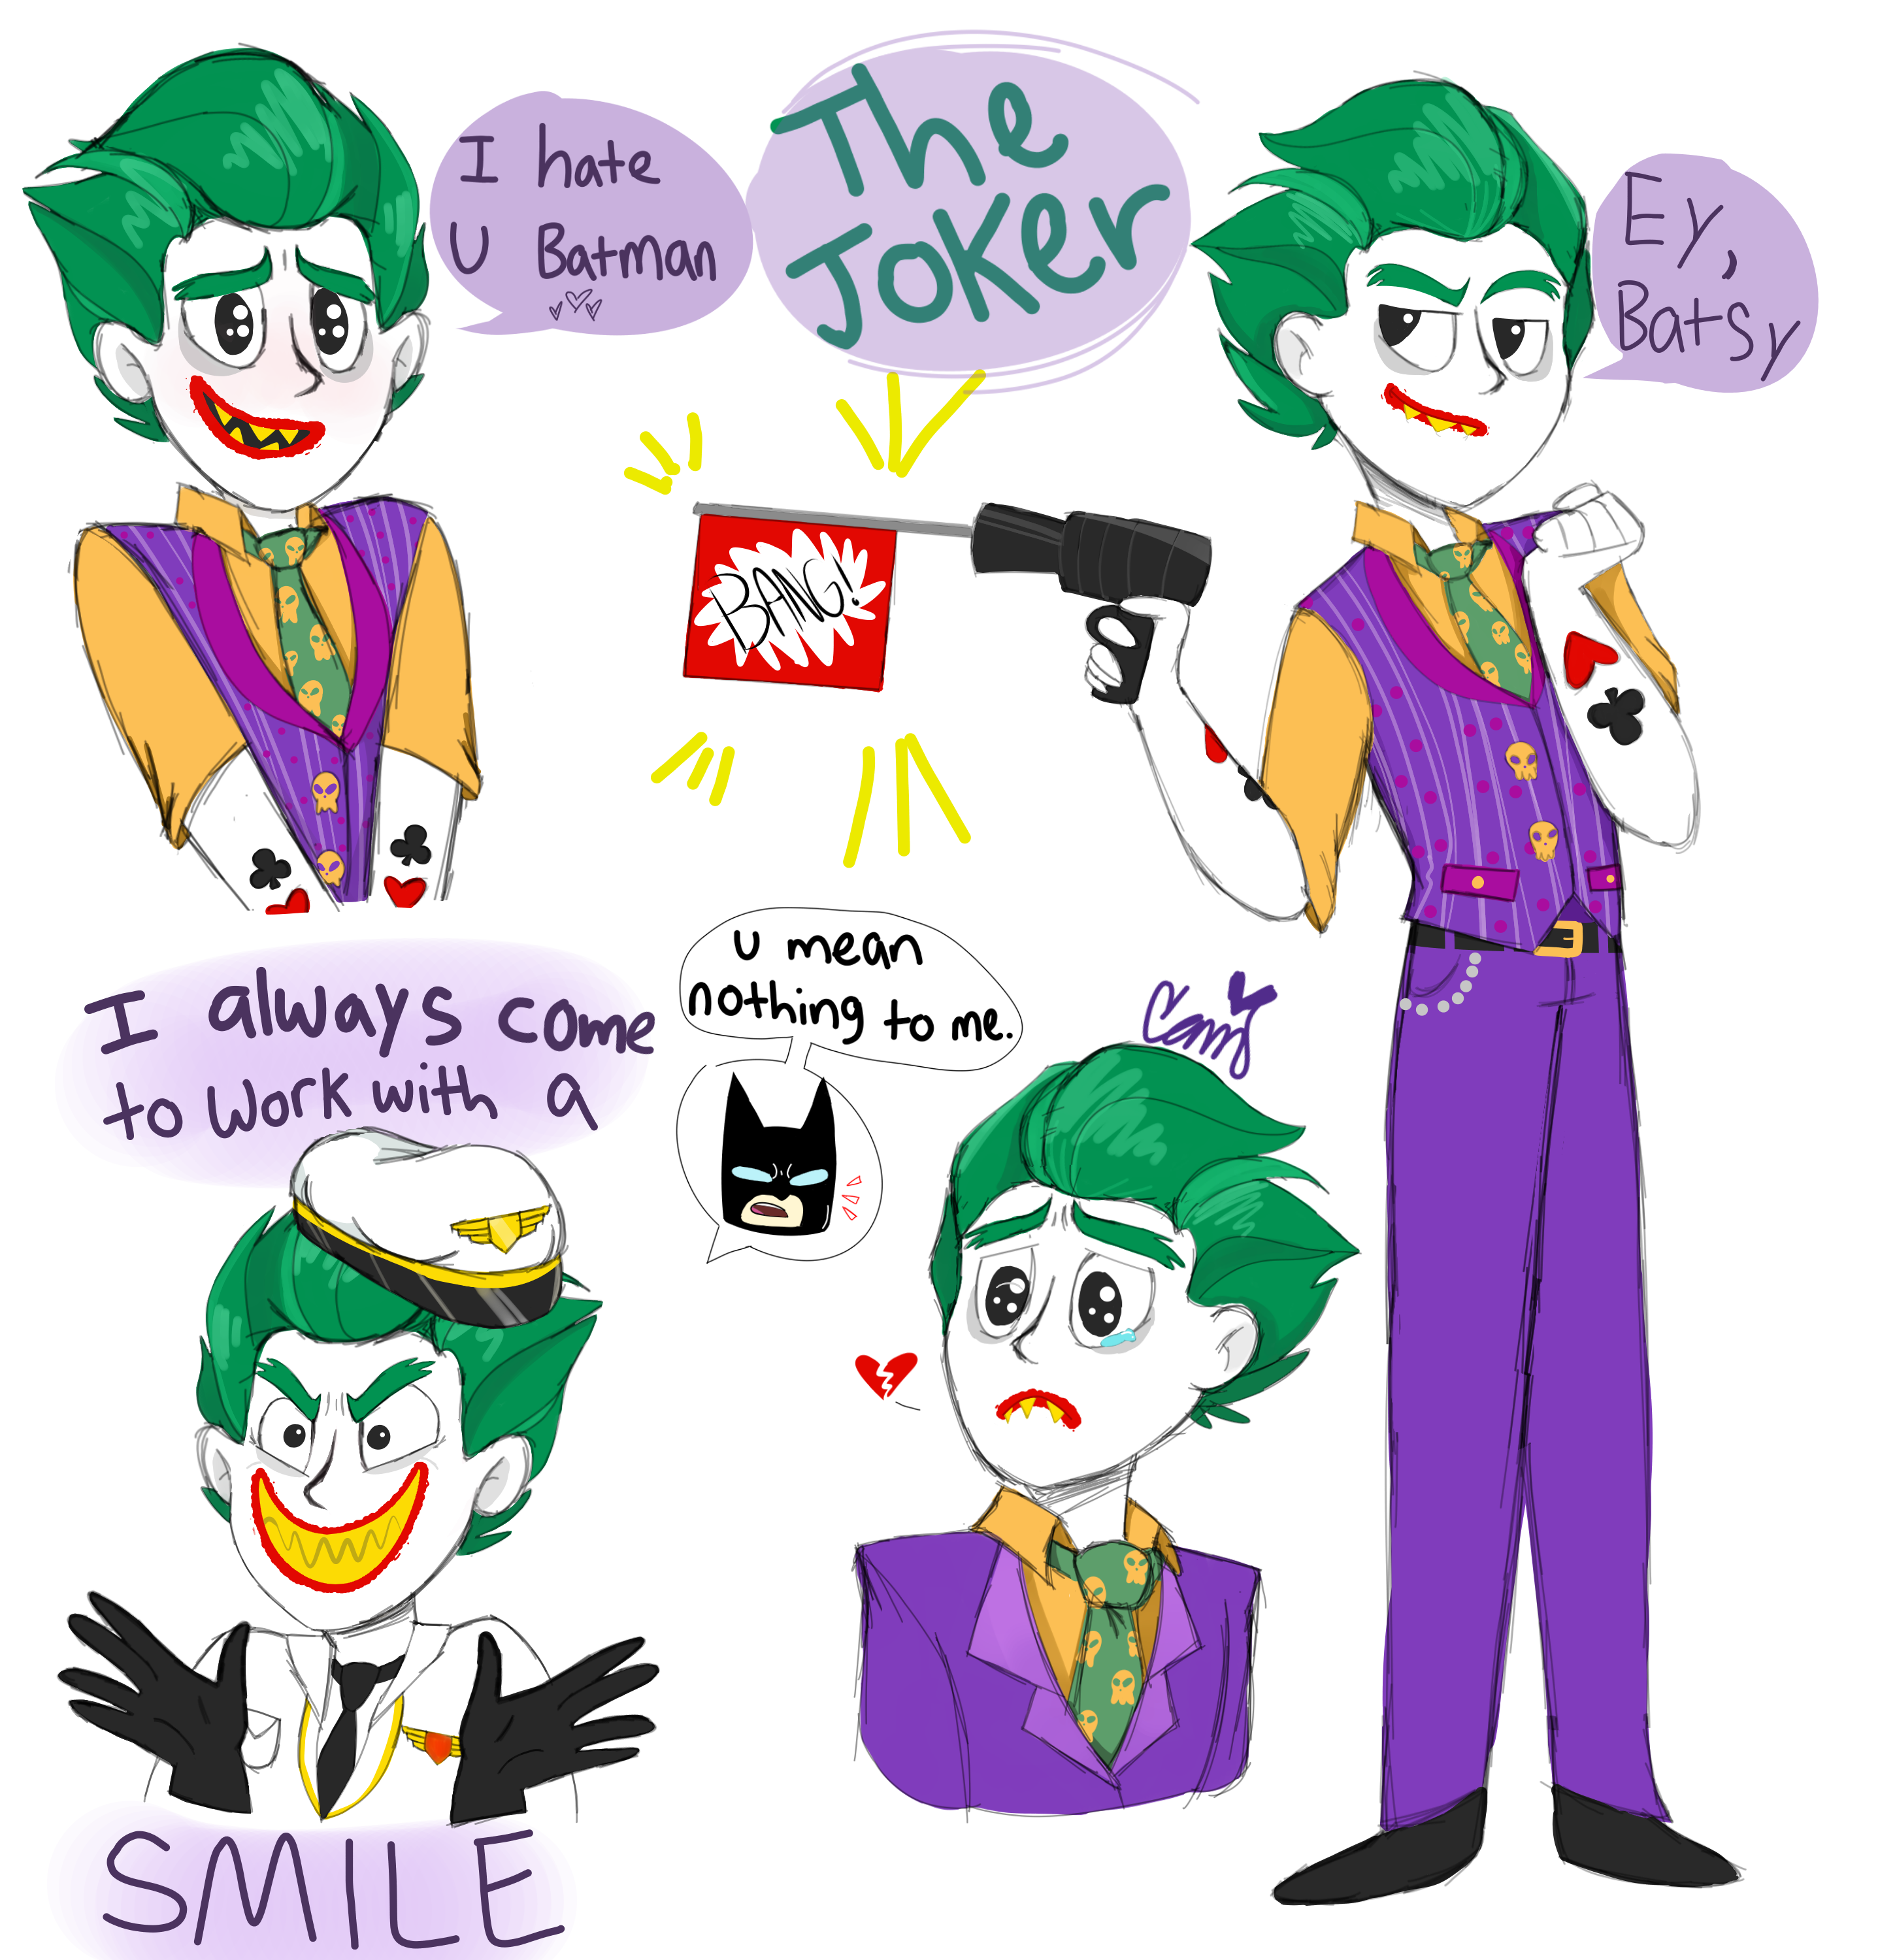 Lego Joker The Lego Batman Movie Know Your Meme